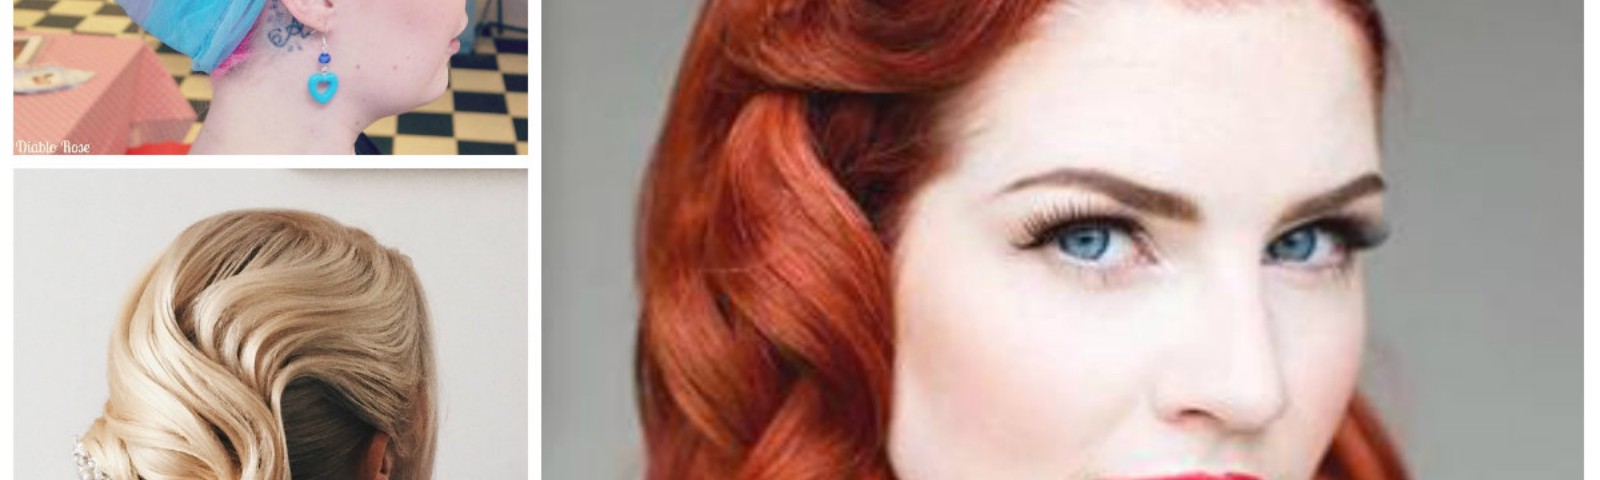 Chic Retro-und Vintage-Frisuren